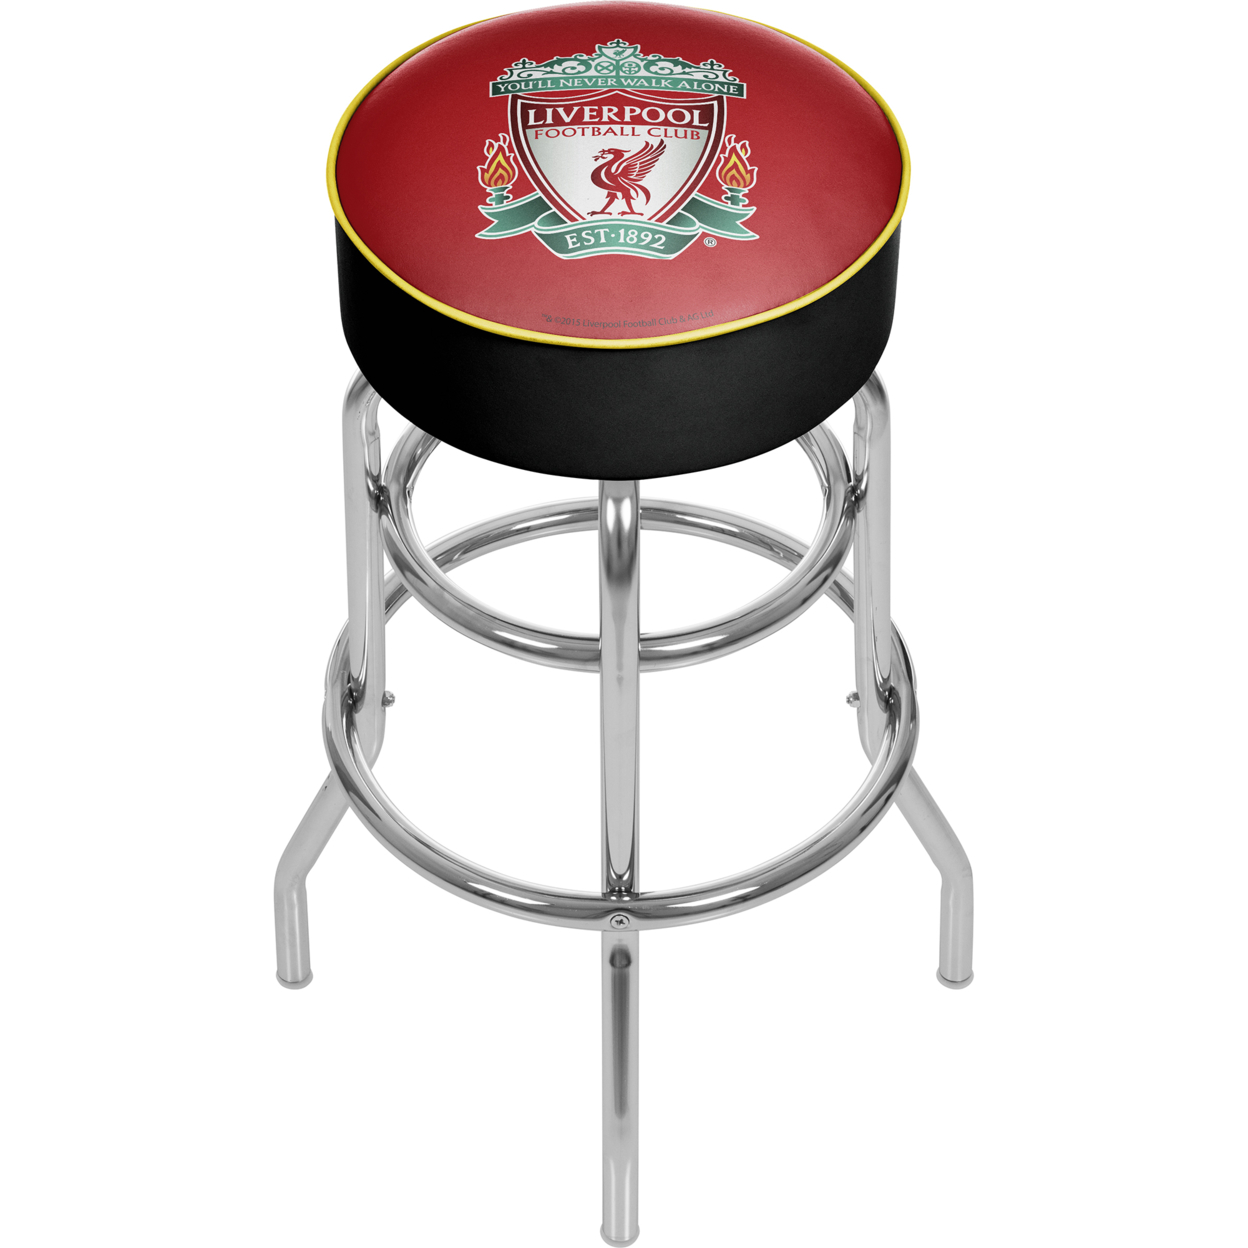 Premier League Liverpool Football Club Chrome Padded Swivel Bar Stool 30 Inches High сетевой фильтр volsten s 4x5 9304